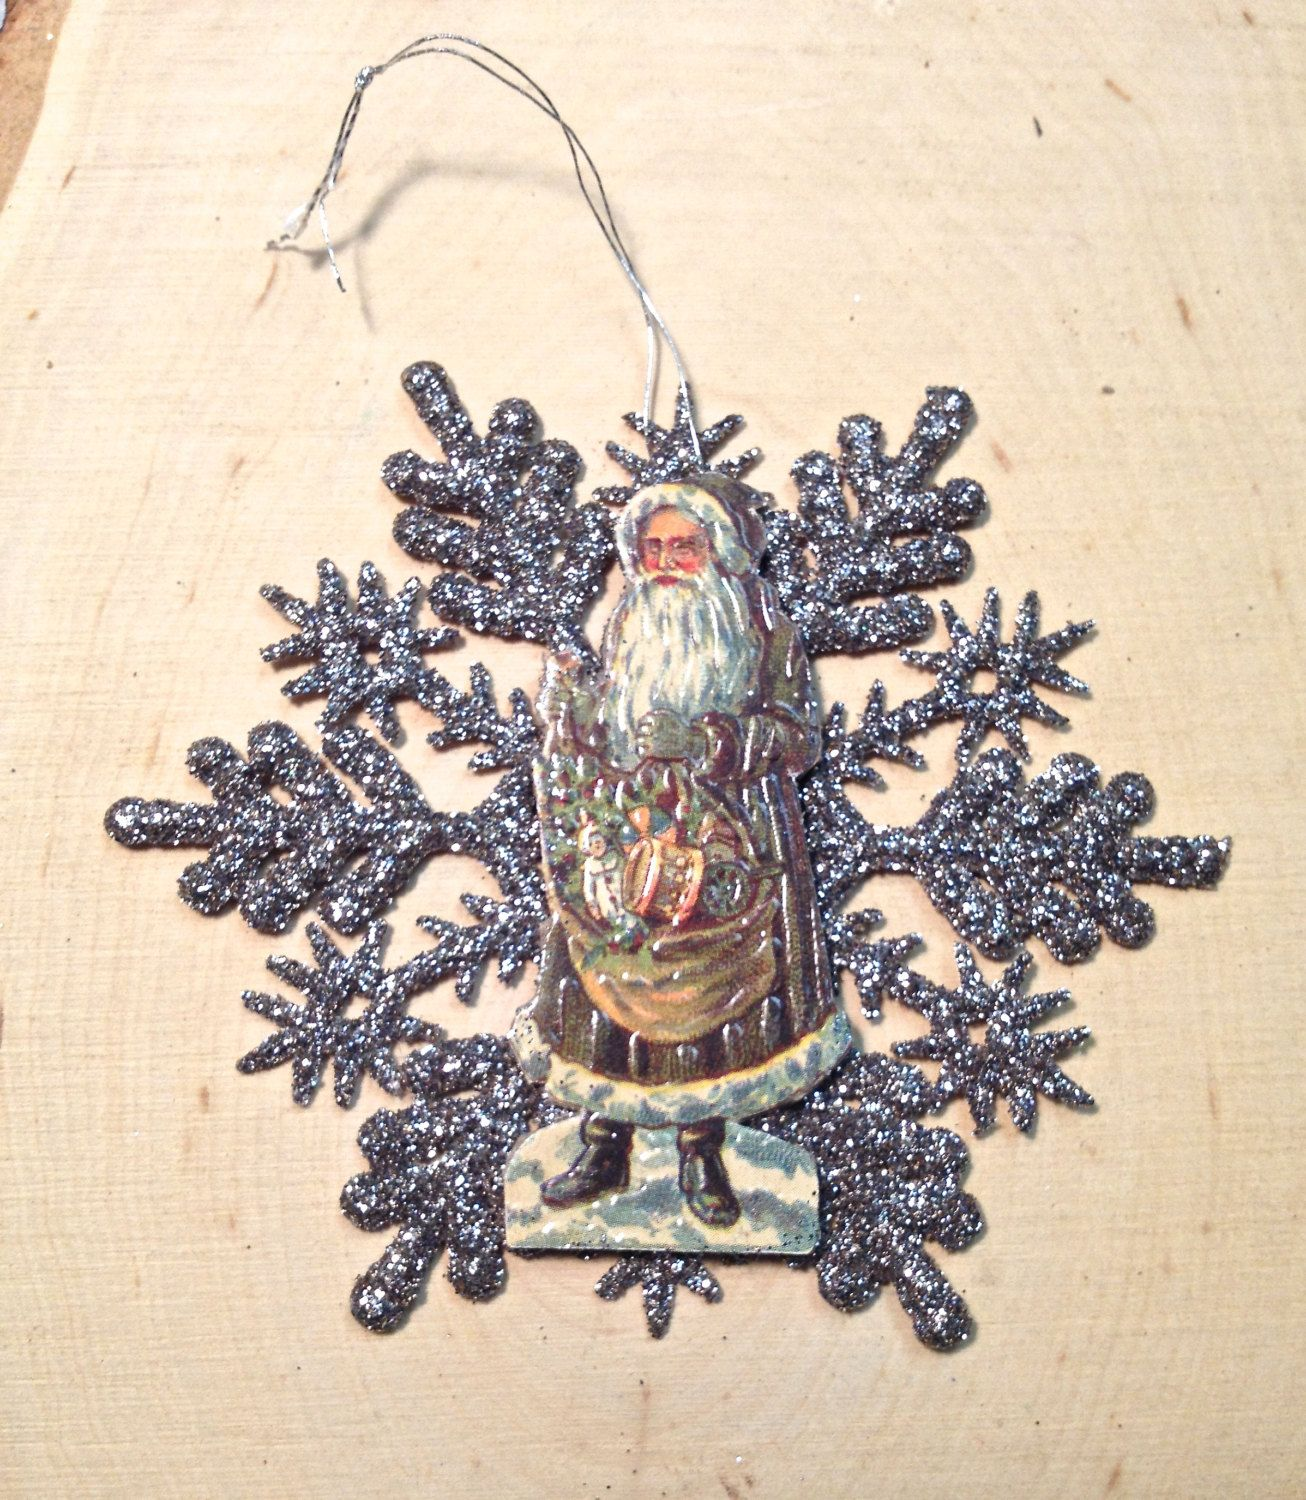 Victorian Father Christmas Decorations: Silver Snowflake And Victorian Santa With Sack Ornament By